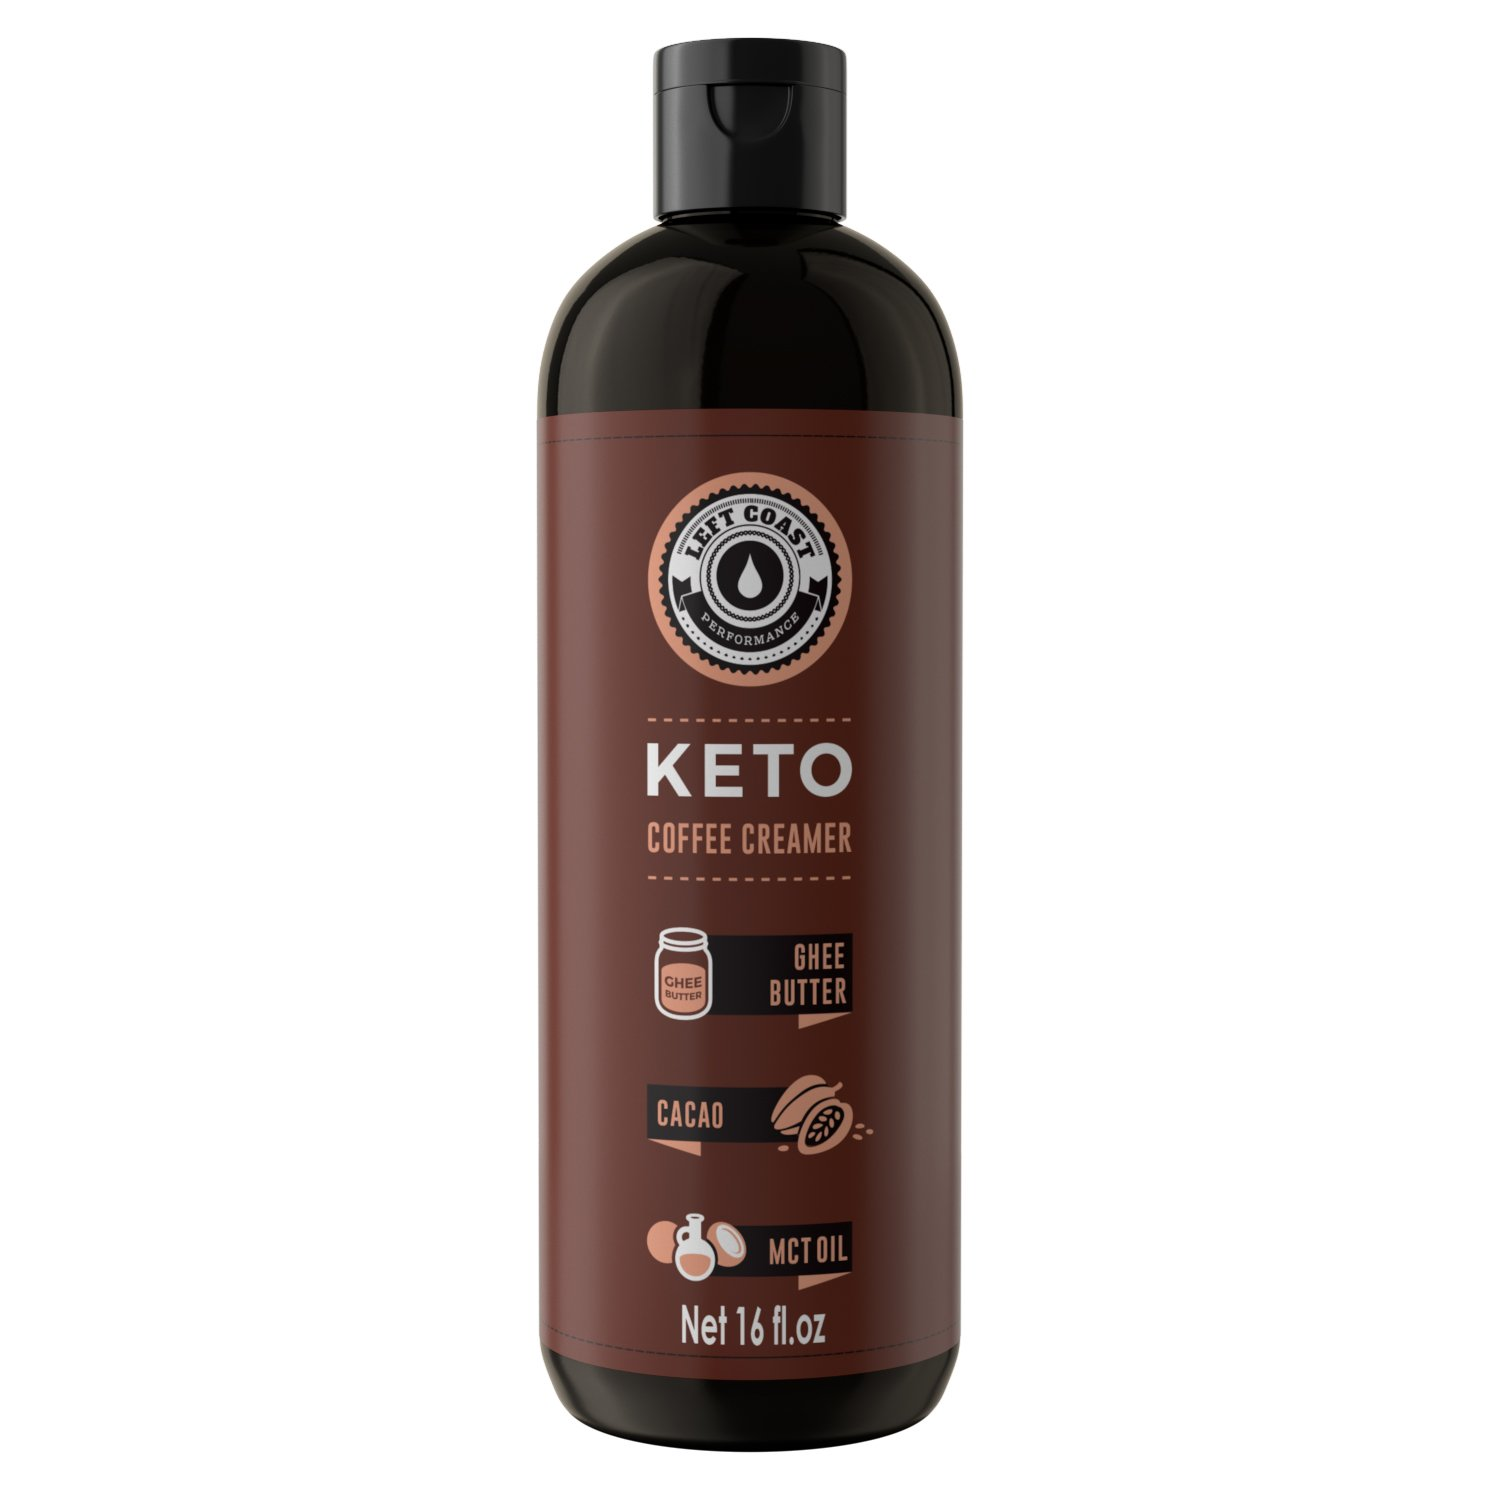 Keto Coffee Creamer HUGE 16oz bottle 32 Servings - Zero Carb Butter Coffee Booster | Ghee Butter, Organic Coconut Oil, MCT Oil, Cacao Butter, | Keto, Paleo Friendly Butter Coffee - Left Coast